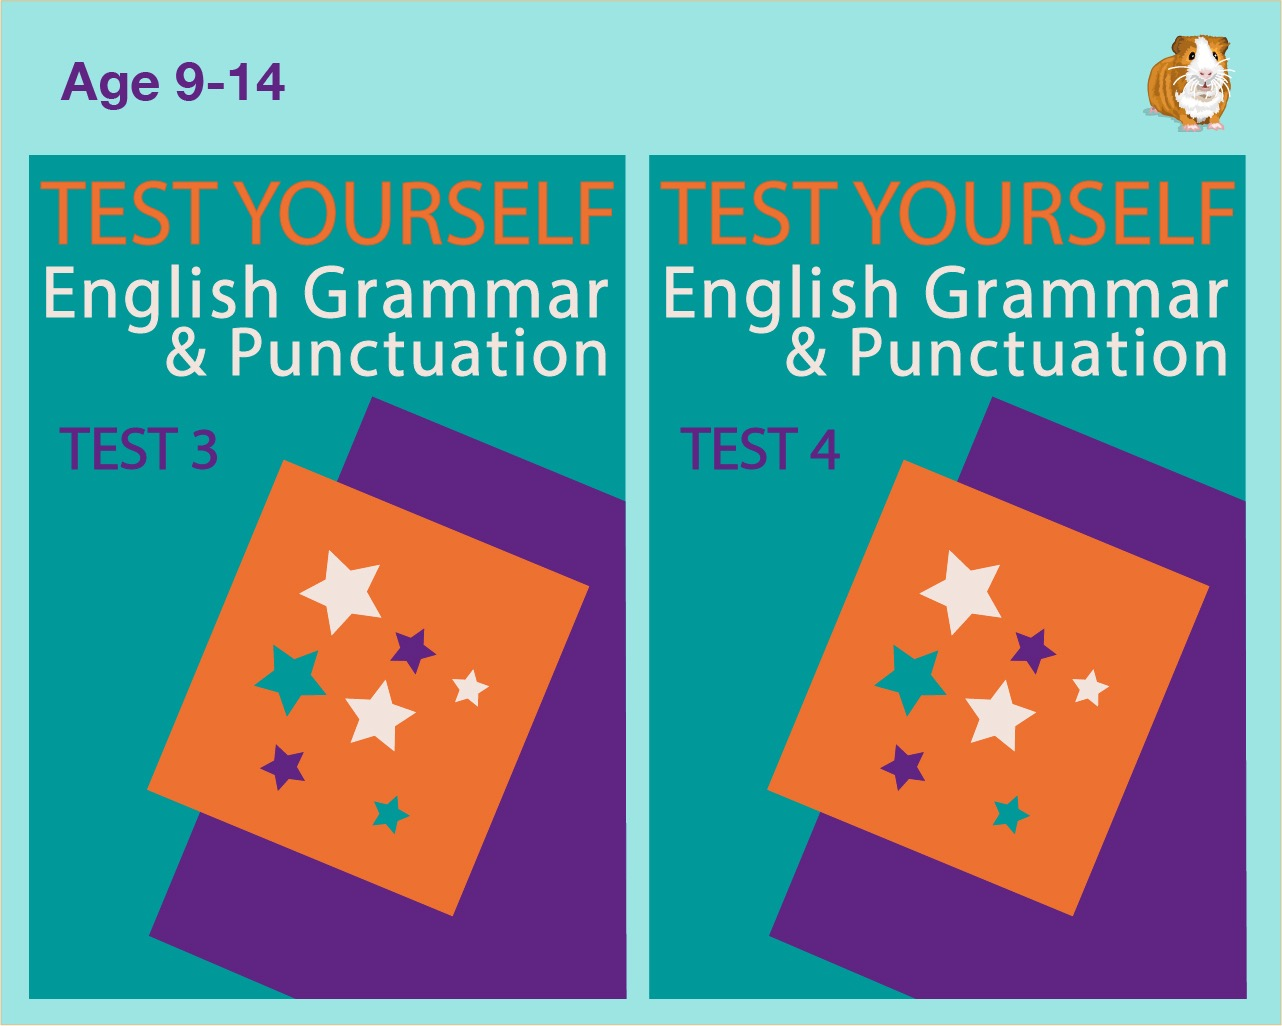 Assessment Test 3 & 4 (Test Your English Grammar And Punctuation Skills) 9-14 years